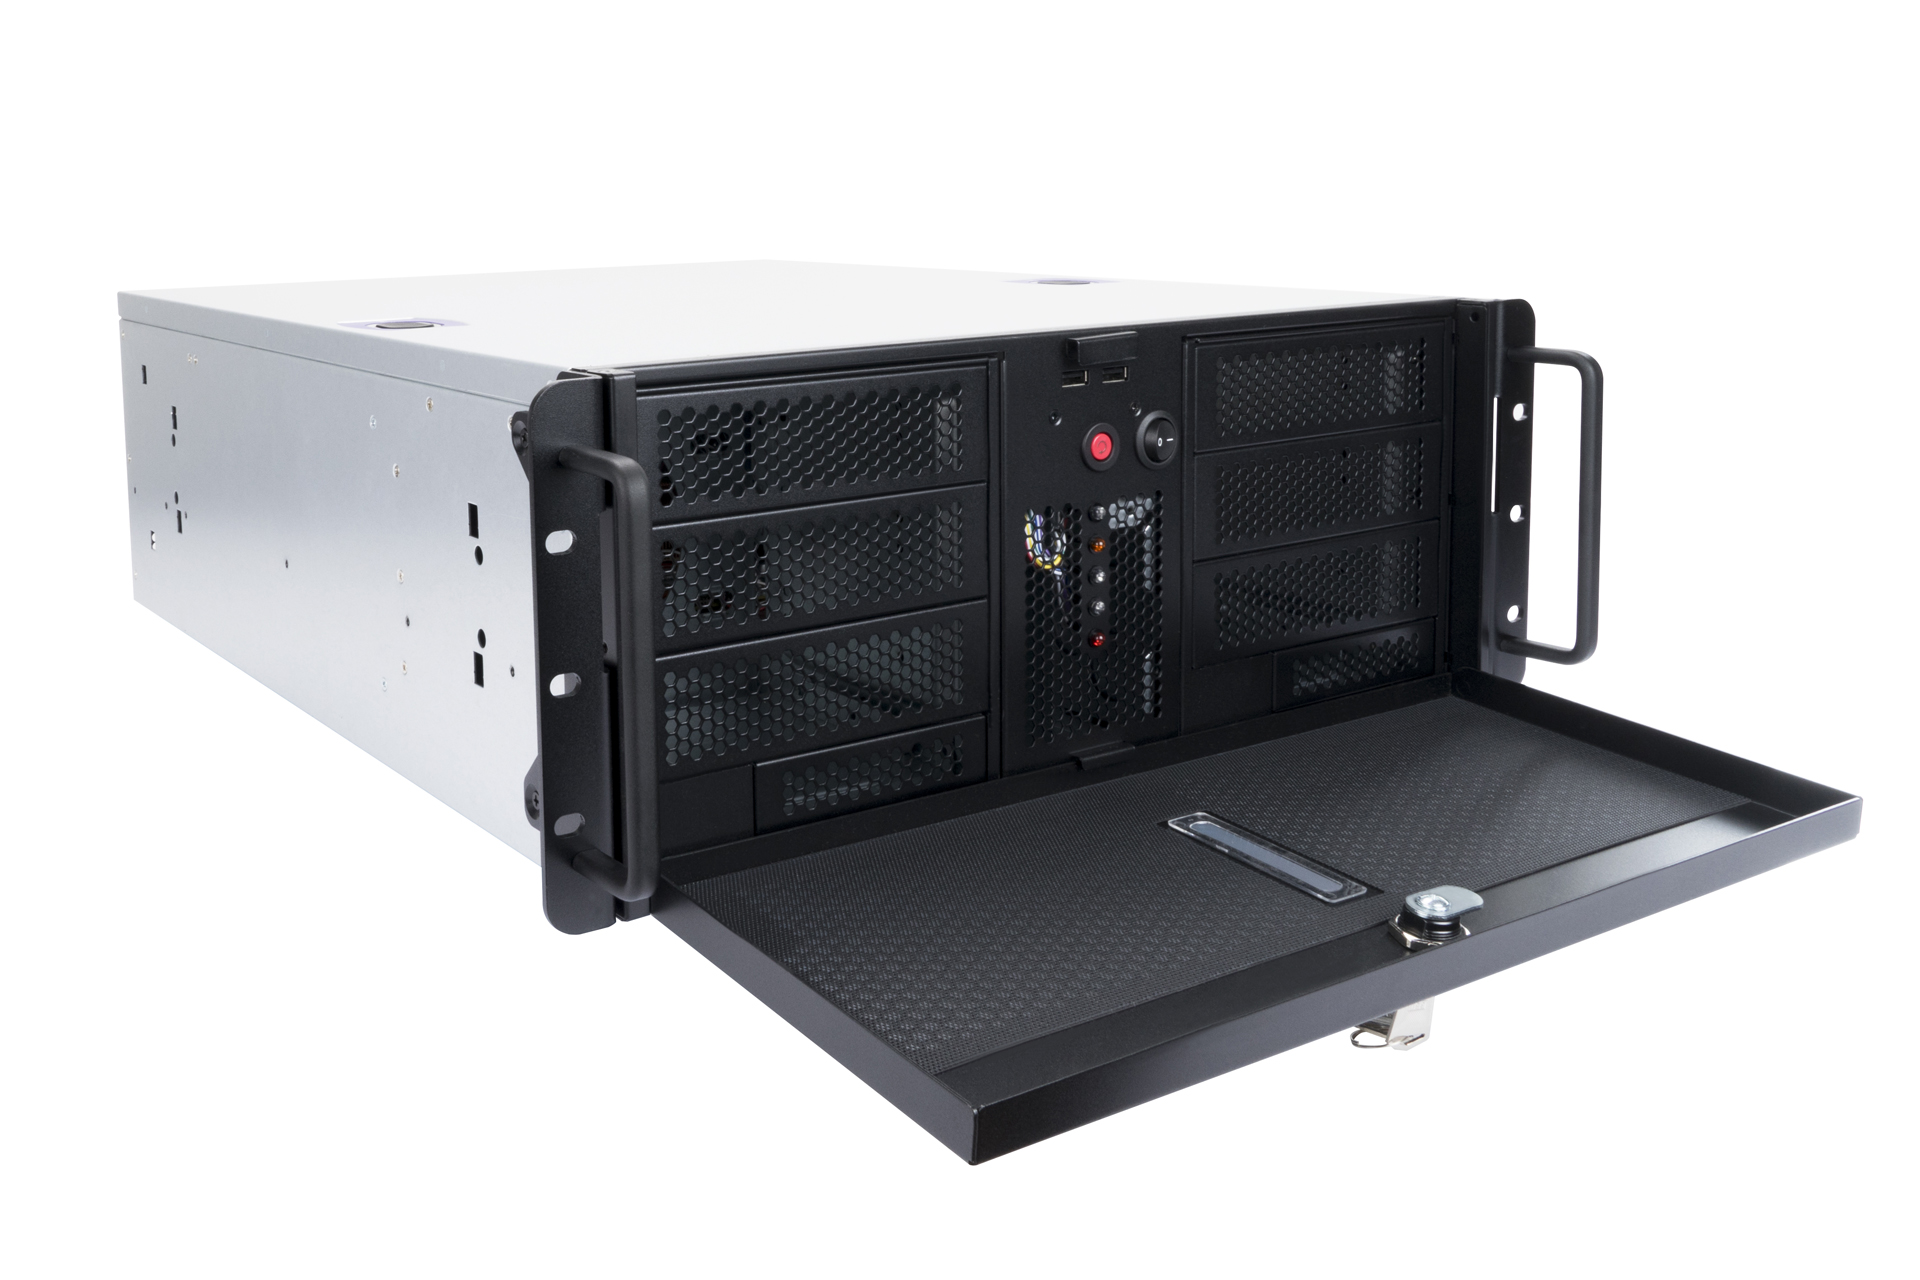 IW-R400-03N - server system assembly